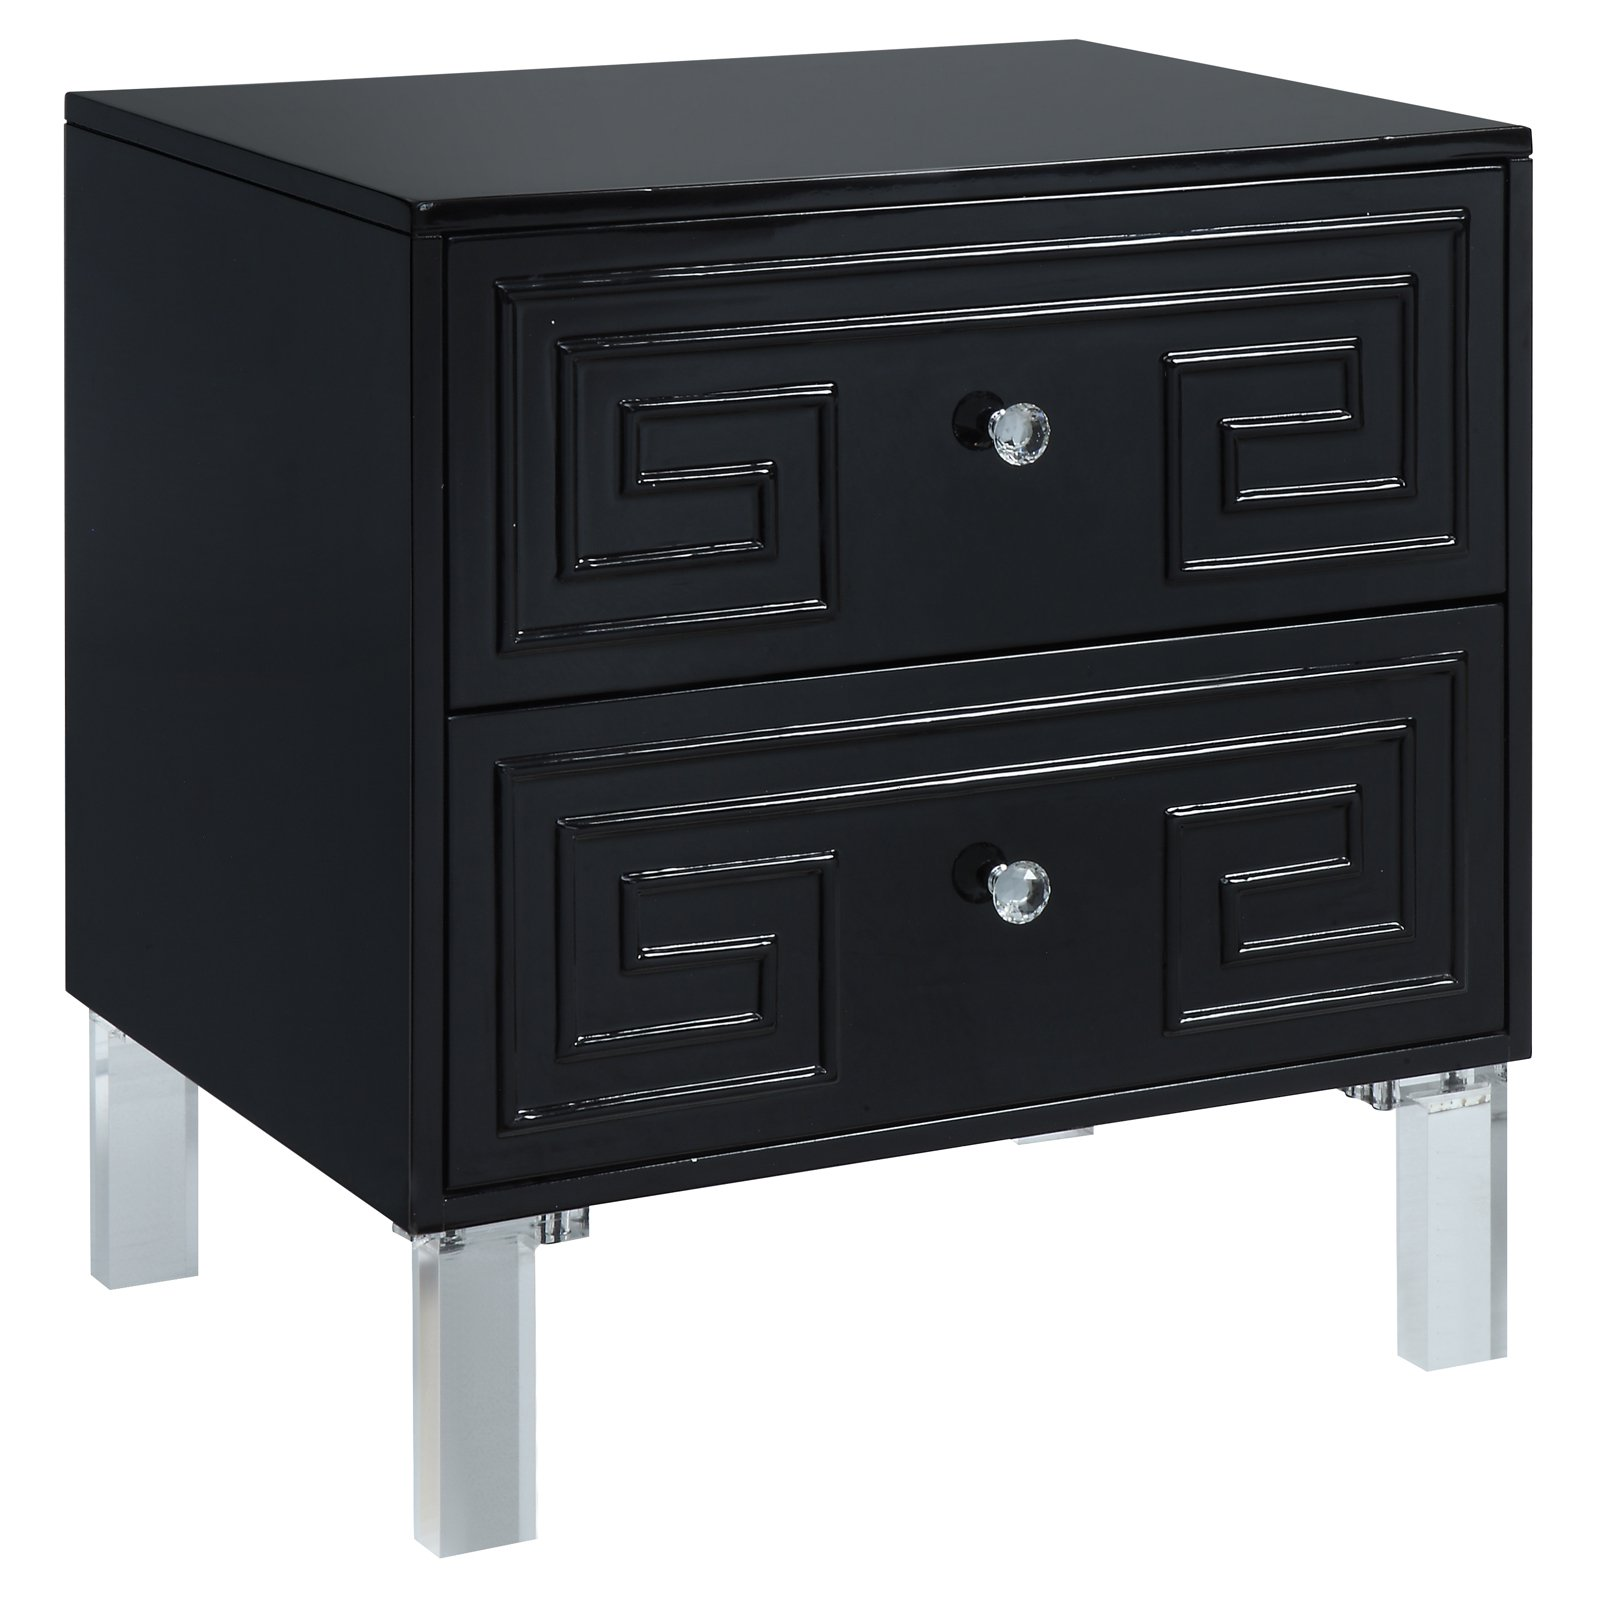 Furniture of America Lela Contemporary Side Table